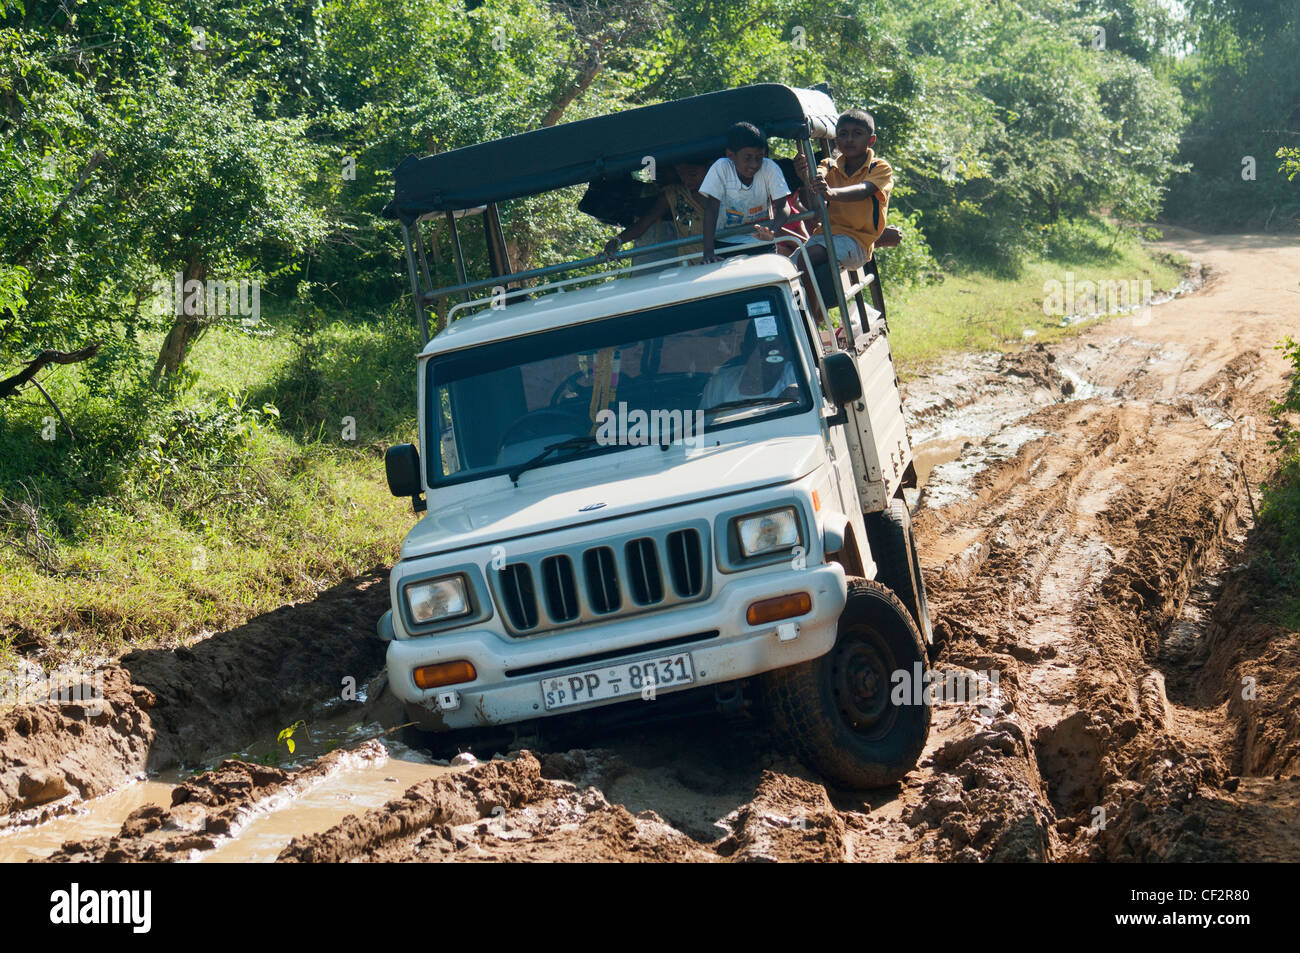 jeep stuck in the mud in Yala National Park, Sri Lanka - Stock Image